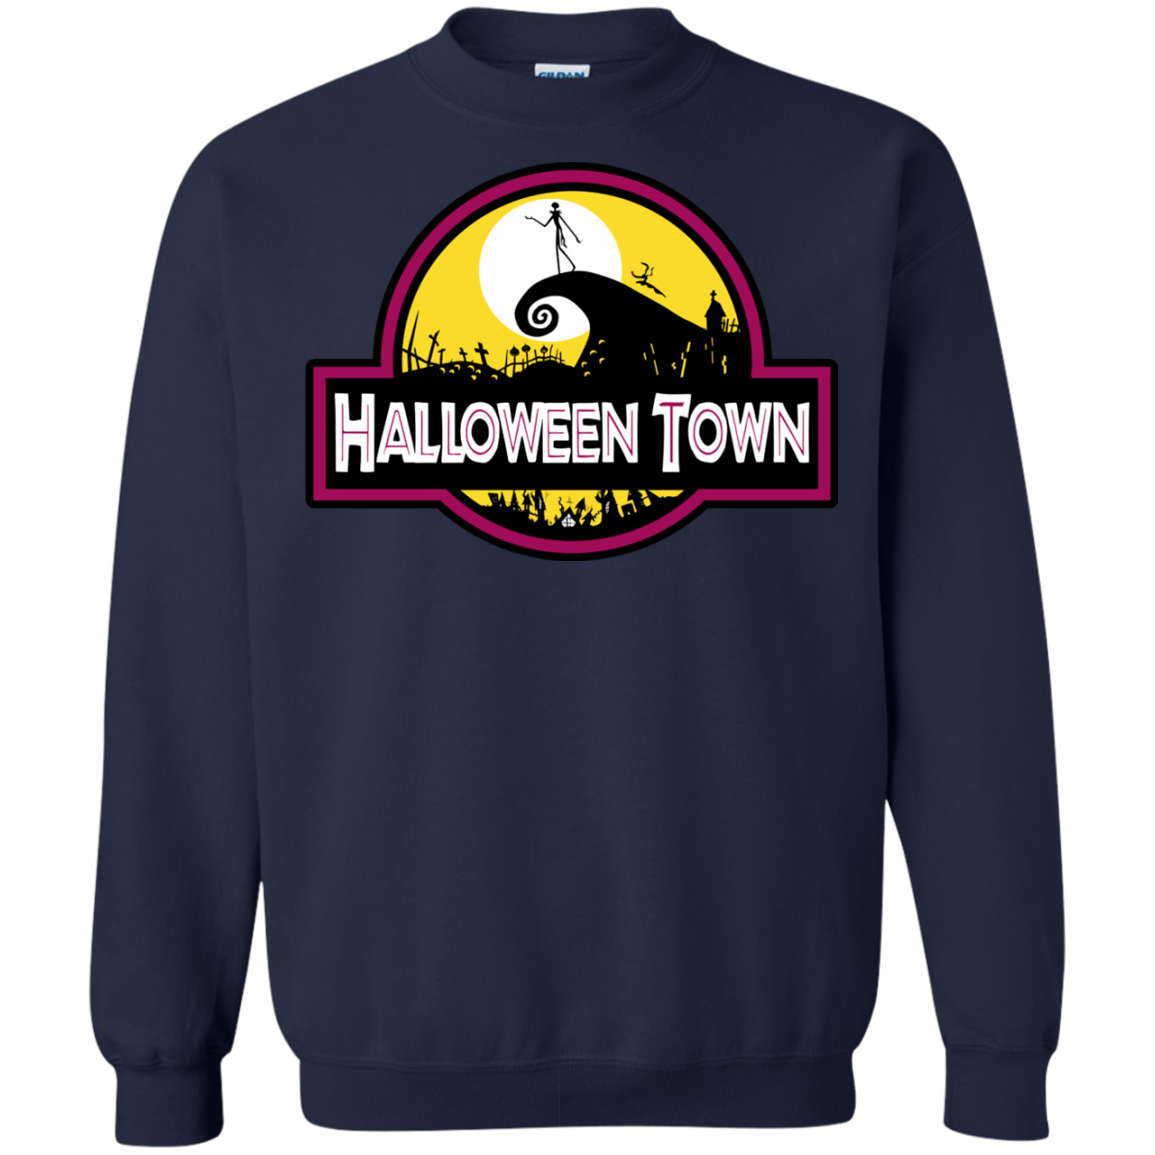 The nightmare before Christmas - Halloween Town